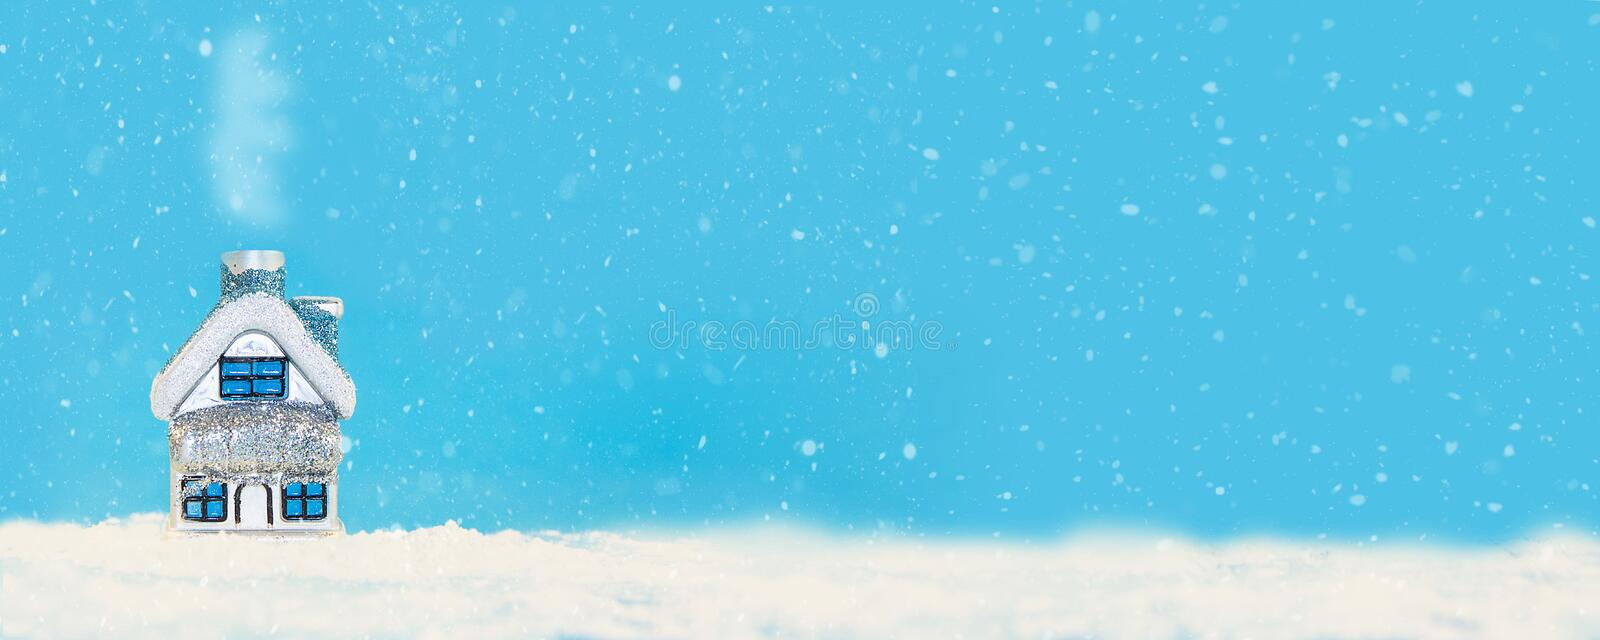 Christmas and New Year minimalism banner.Toy house in the snow on a blue background vector illustration